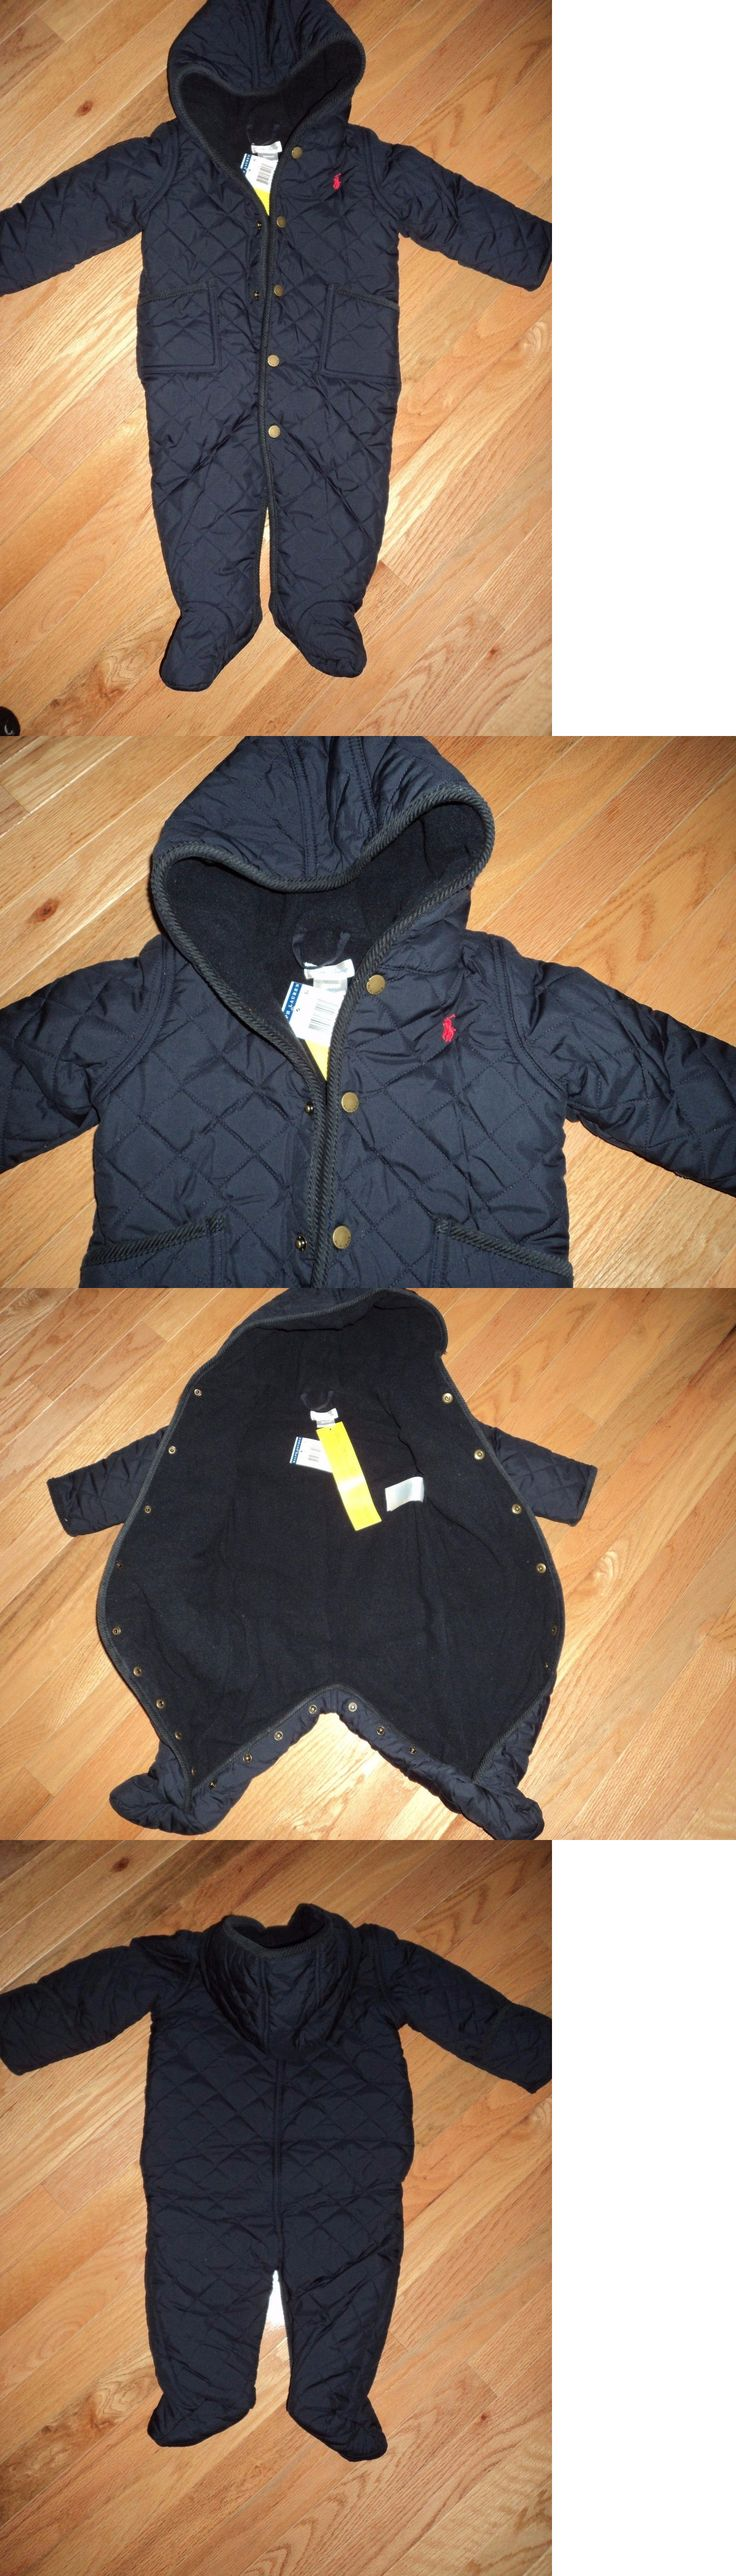 Baby Boys Clothing And Accessories: Nwt Polo Ralph Lauren Hooded Boys One Piece Sz 9M -> BUY IT NOW ONLY: $45 on eBay!